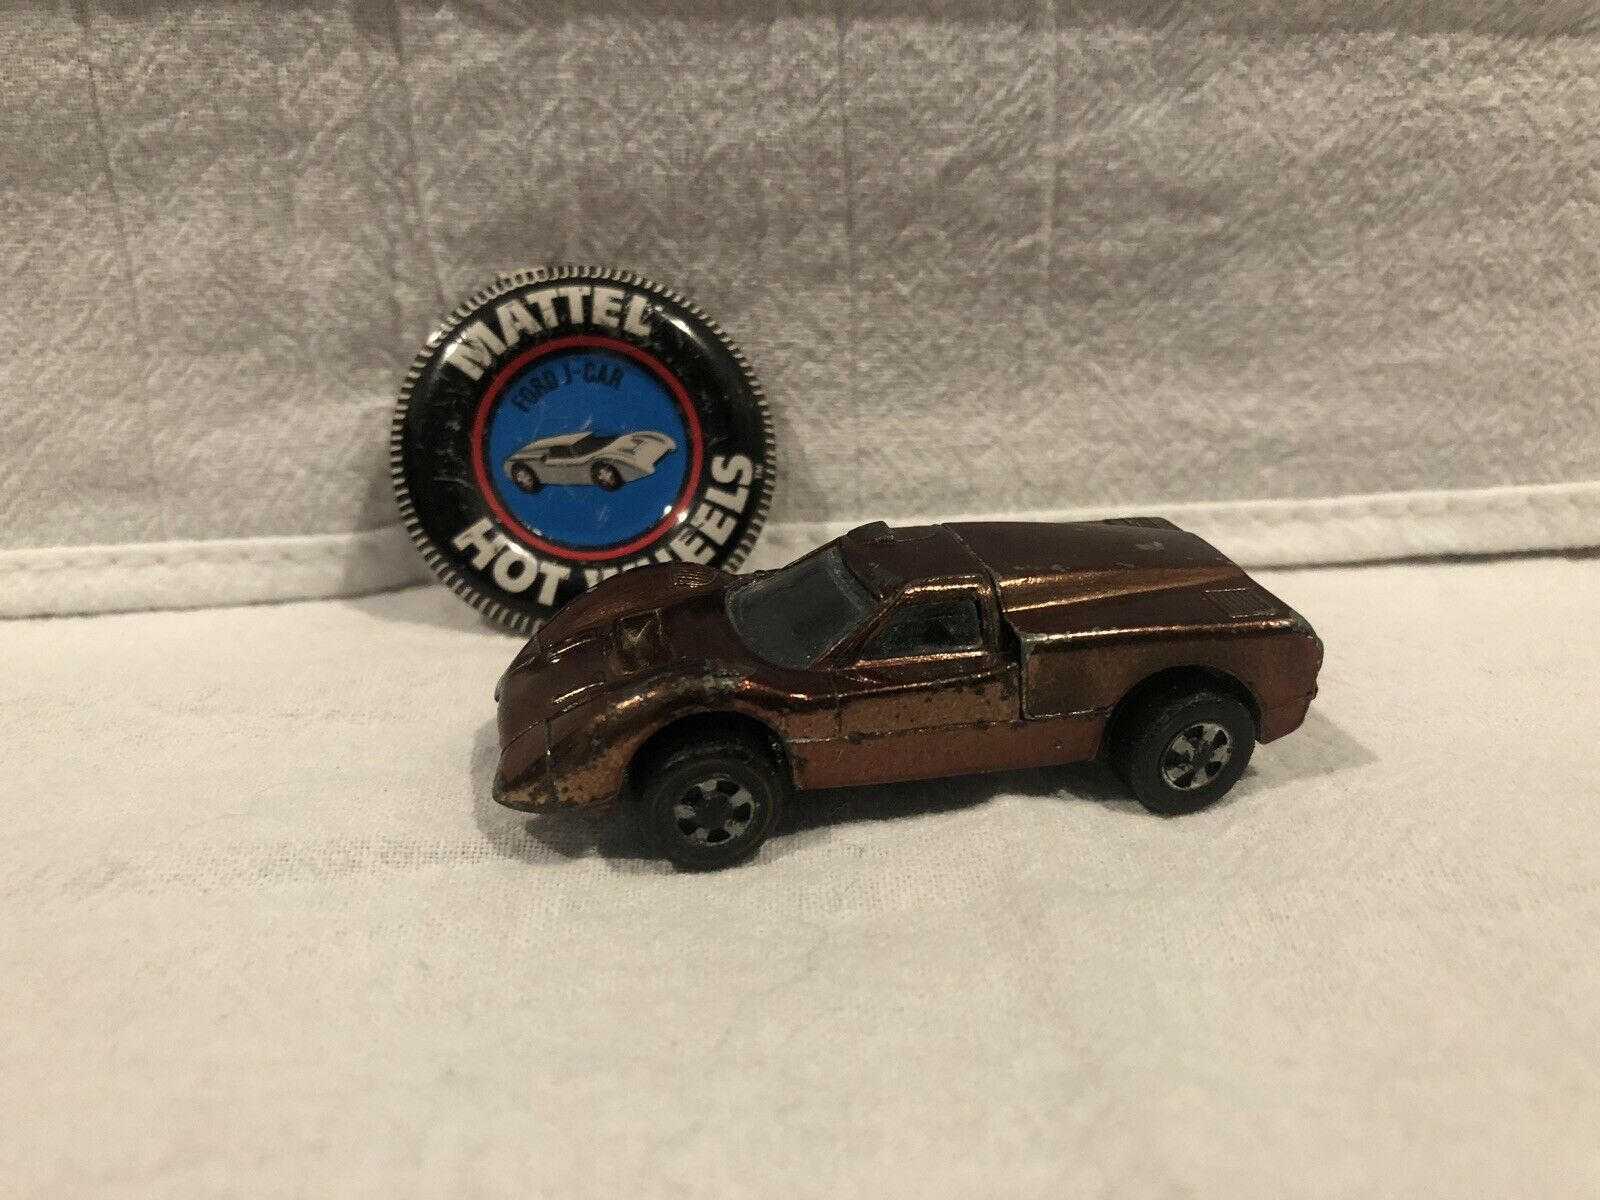 Hot Wheels Red Line Spectraflame Brown Ford J Car